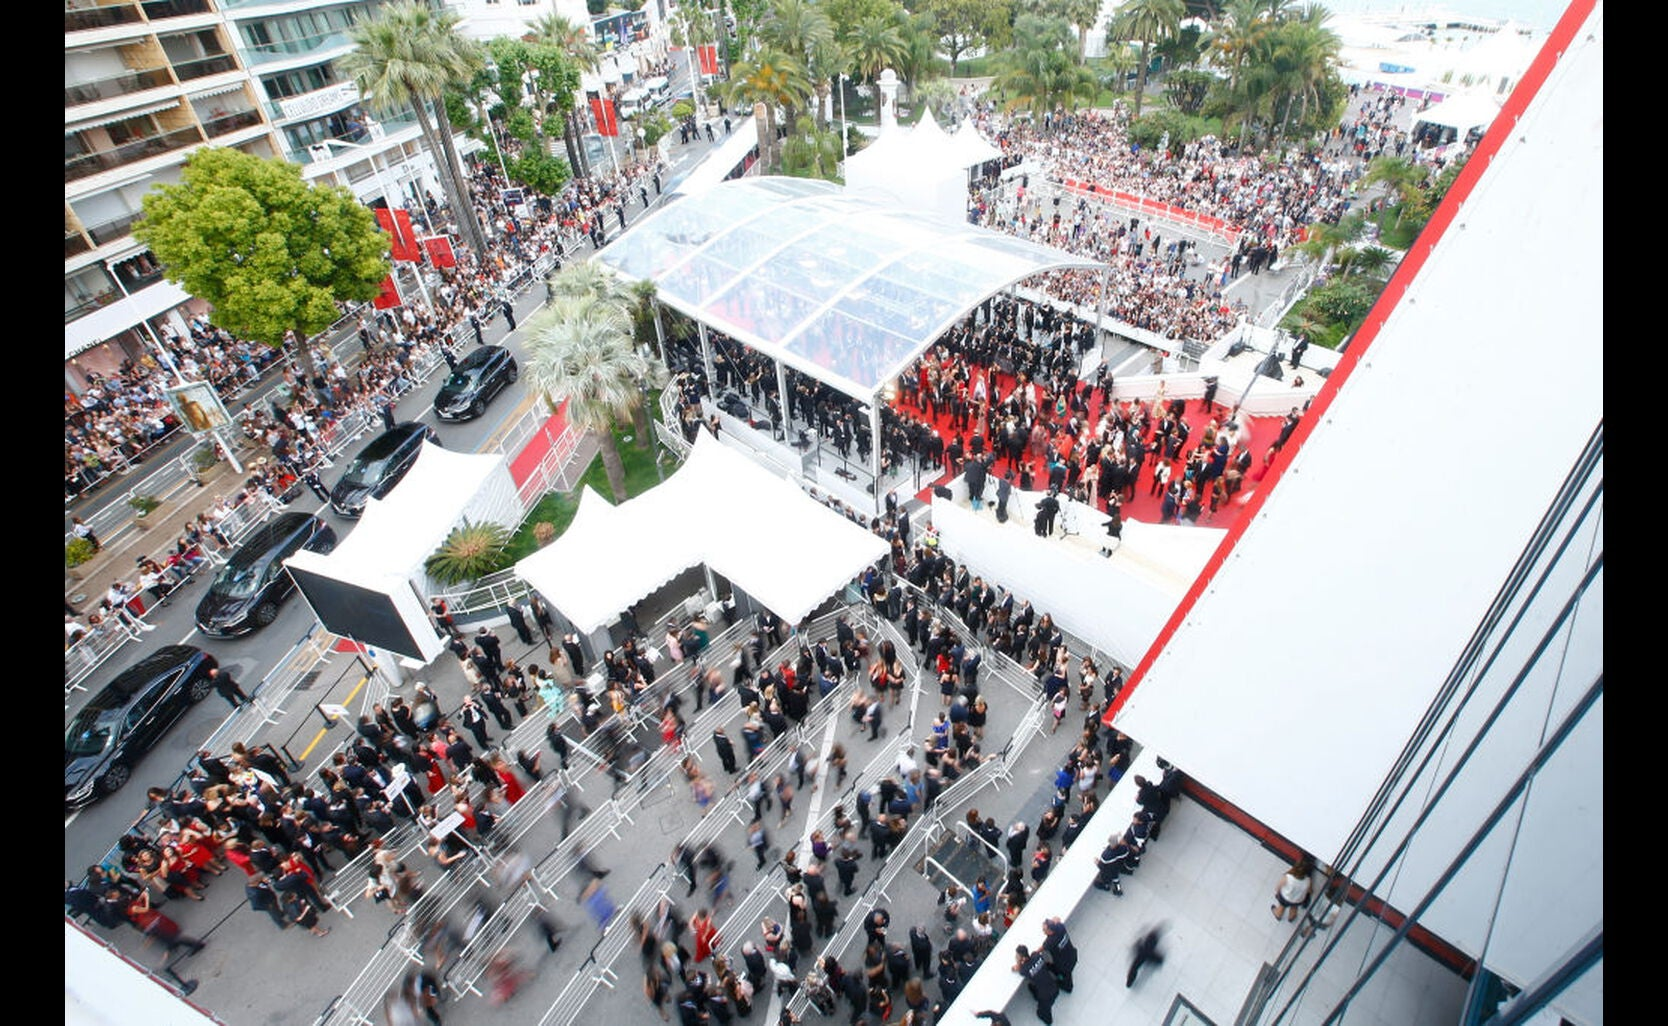 Aerial view of 'Twin Peaks' Premiere at Cannes Film Festival 2017